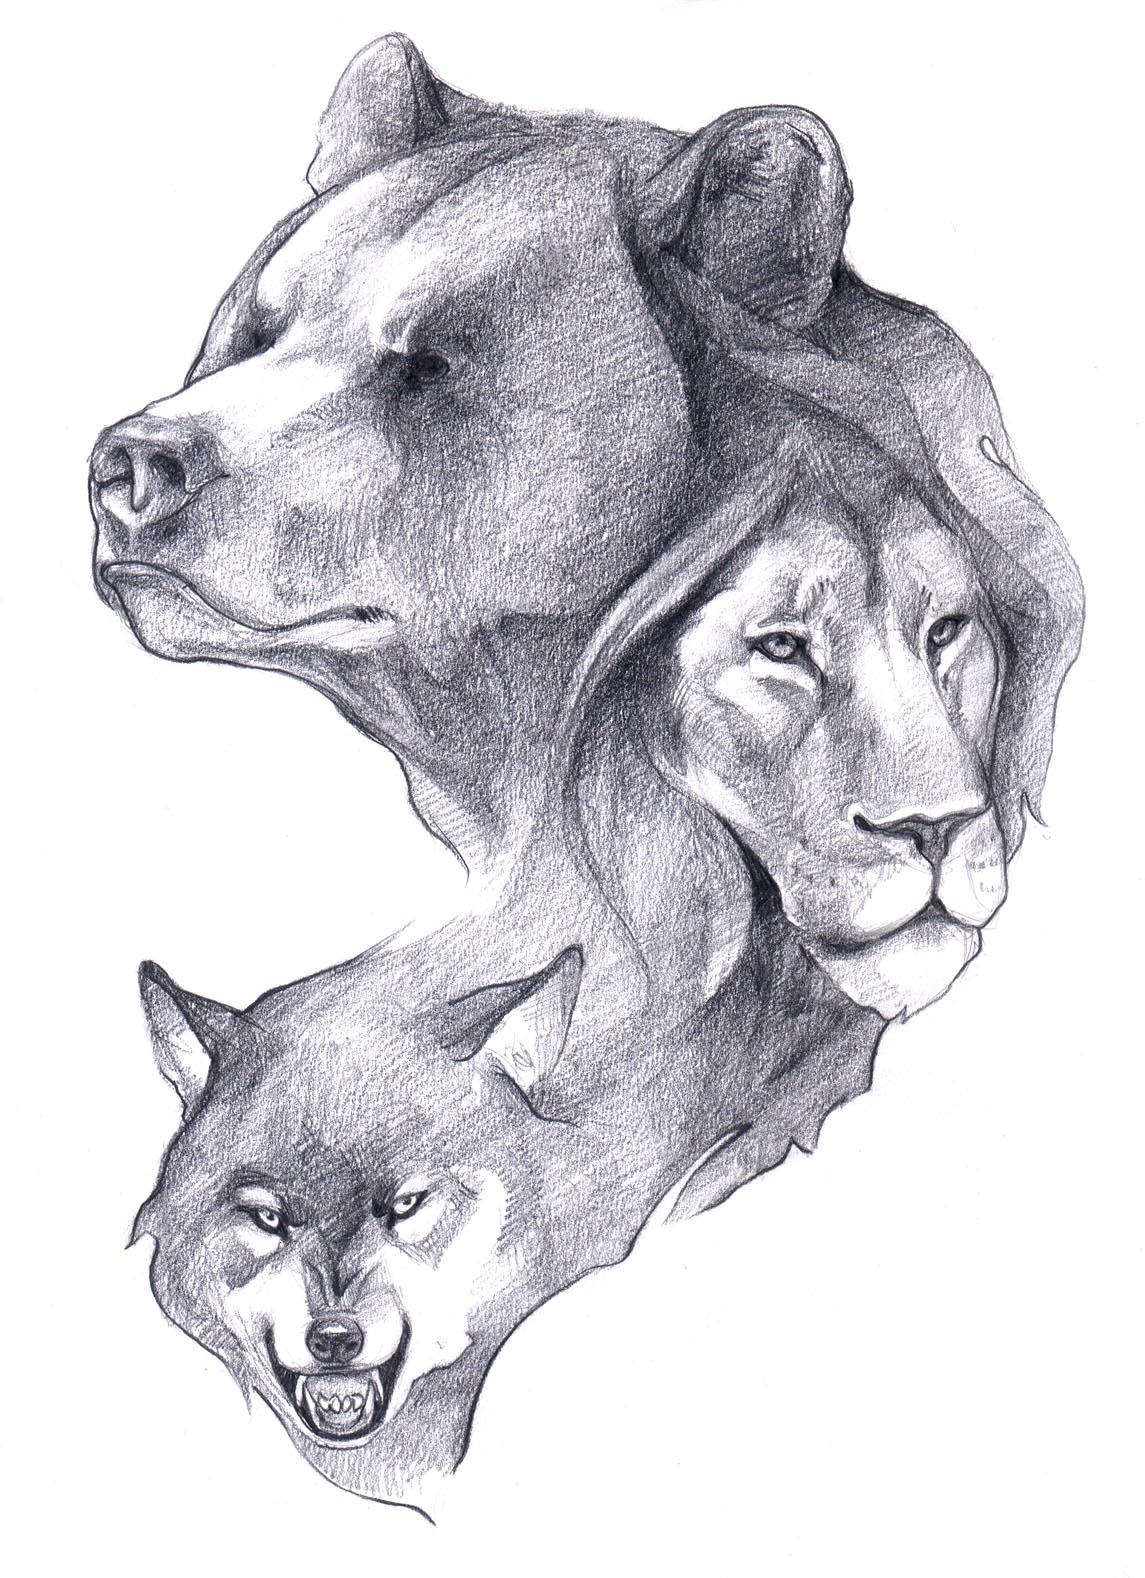 Drawn werewolf bear Head & and Head Wolf